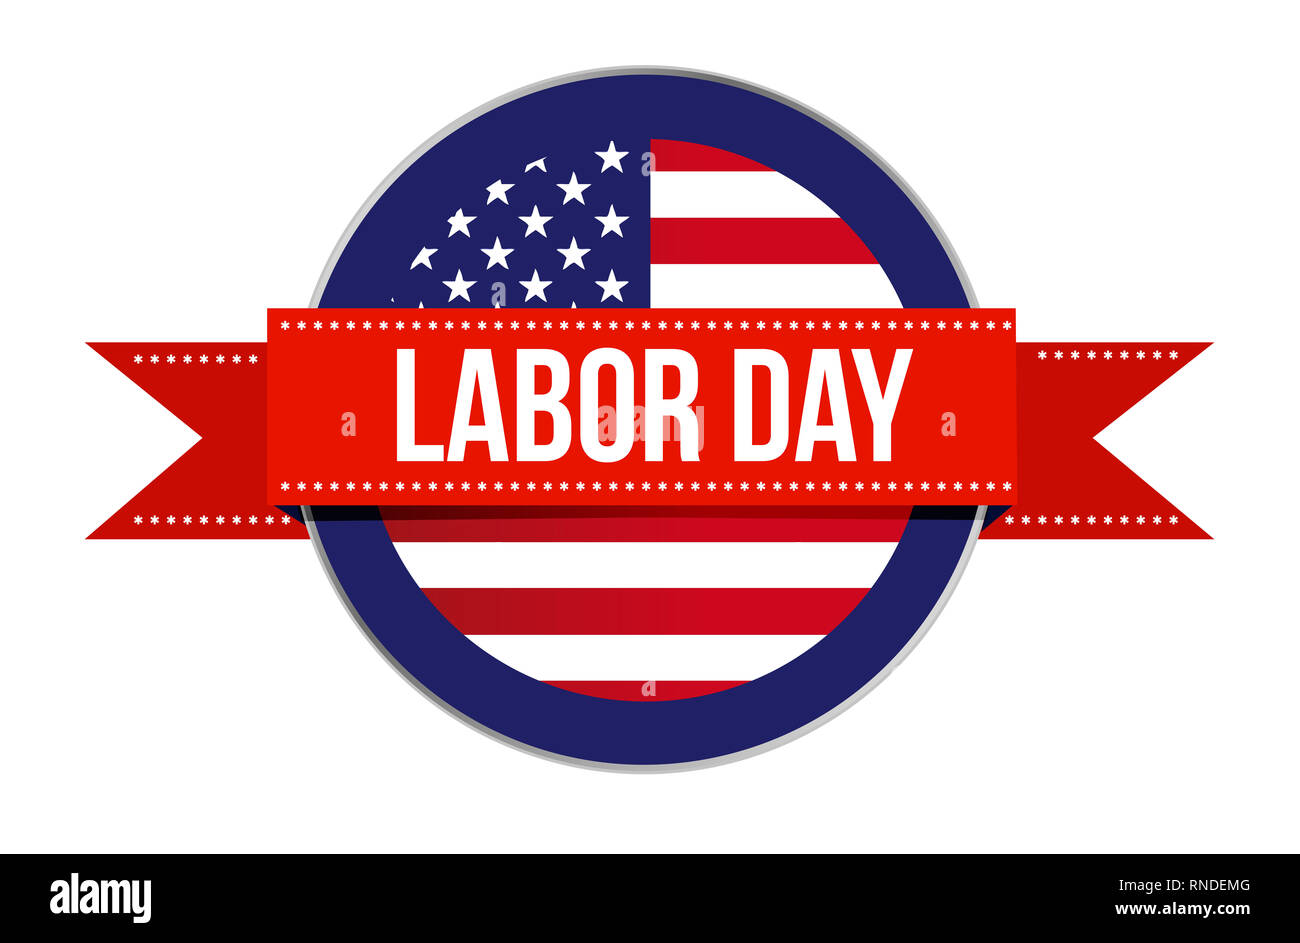 Labor day sign seal icon illustration isolated over a white background Stock Photo